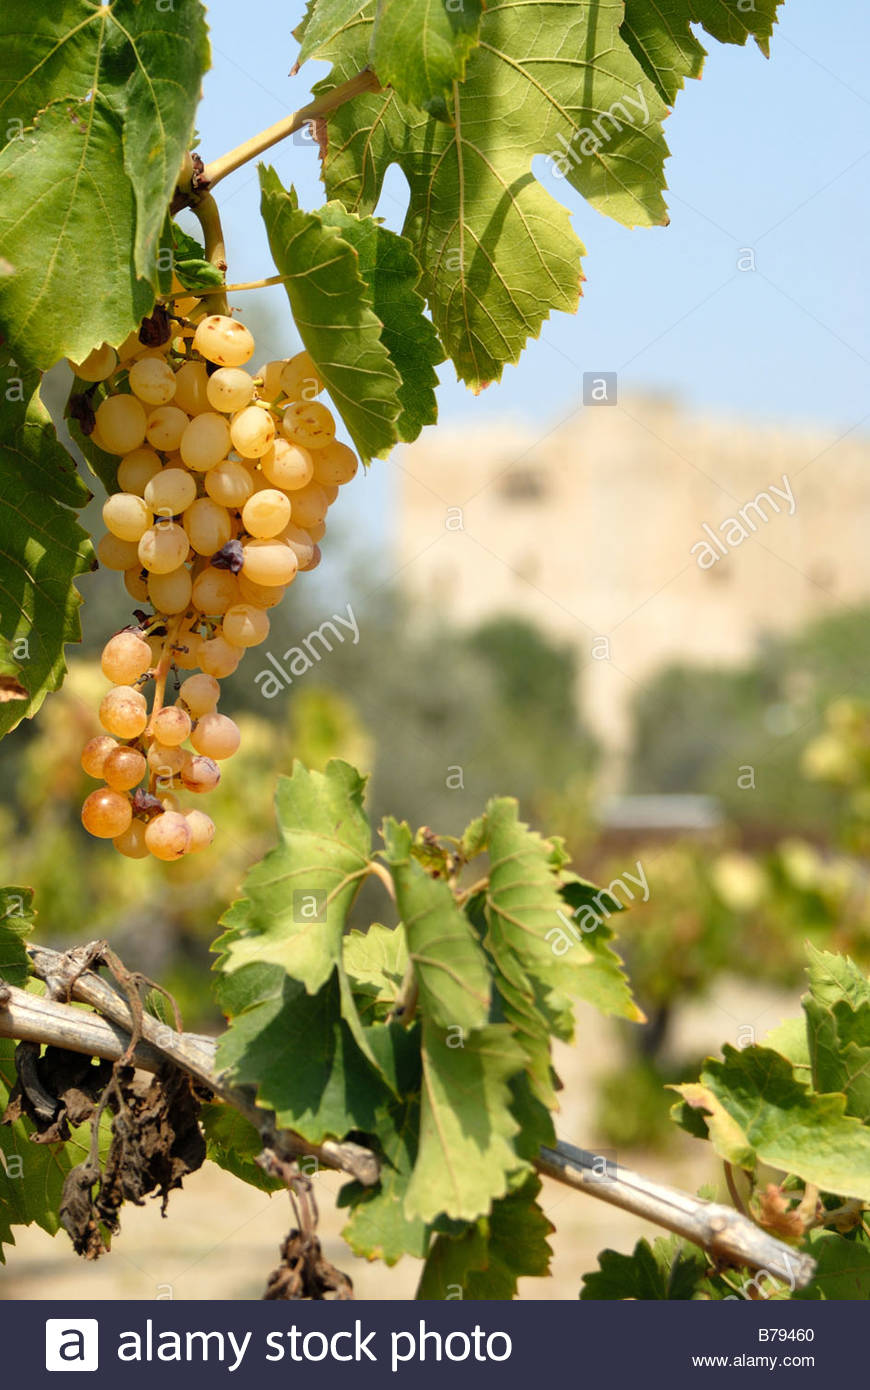 Kolossi Cyprus Kolossi Castle and grape vines. - Stock Image